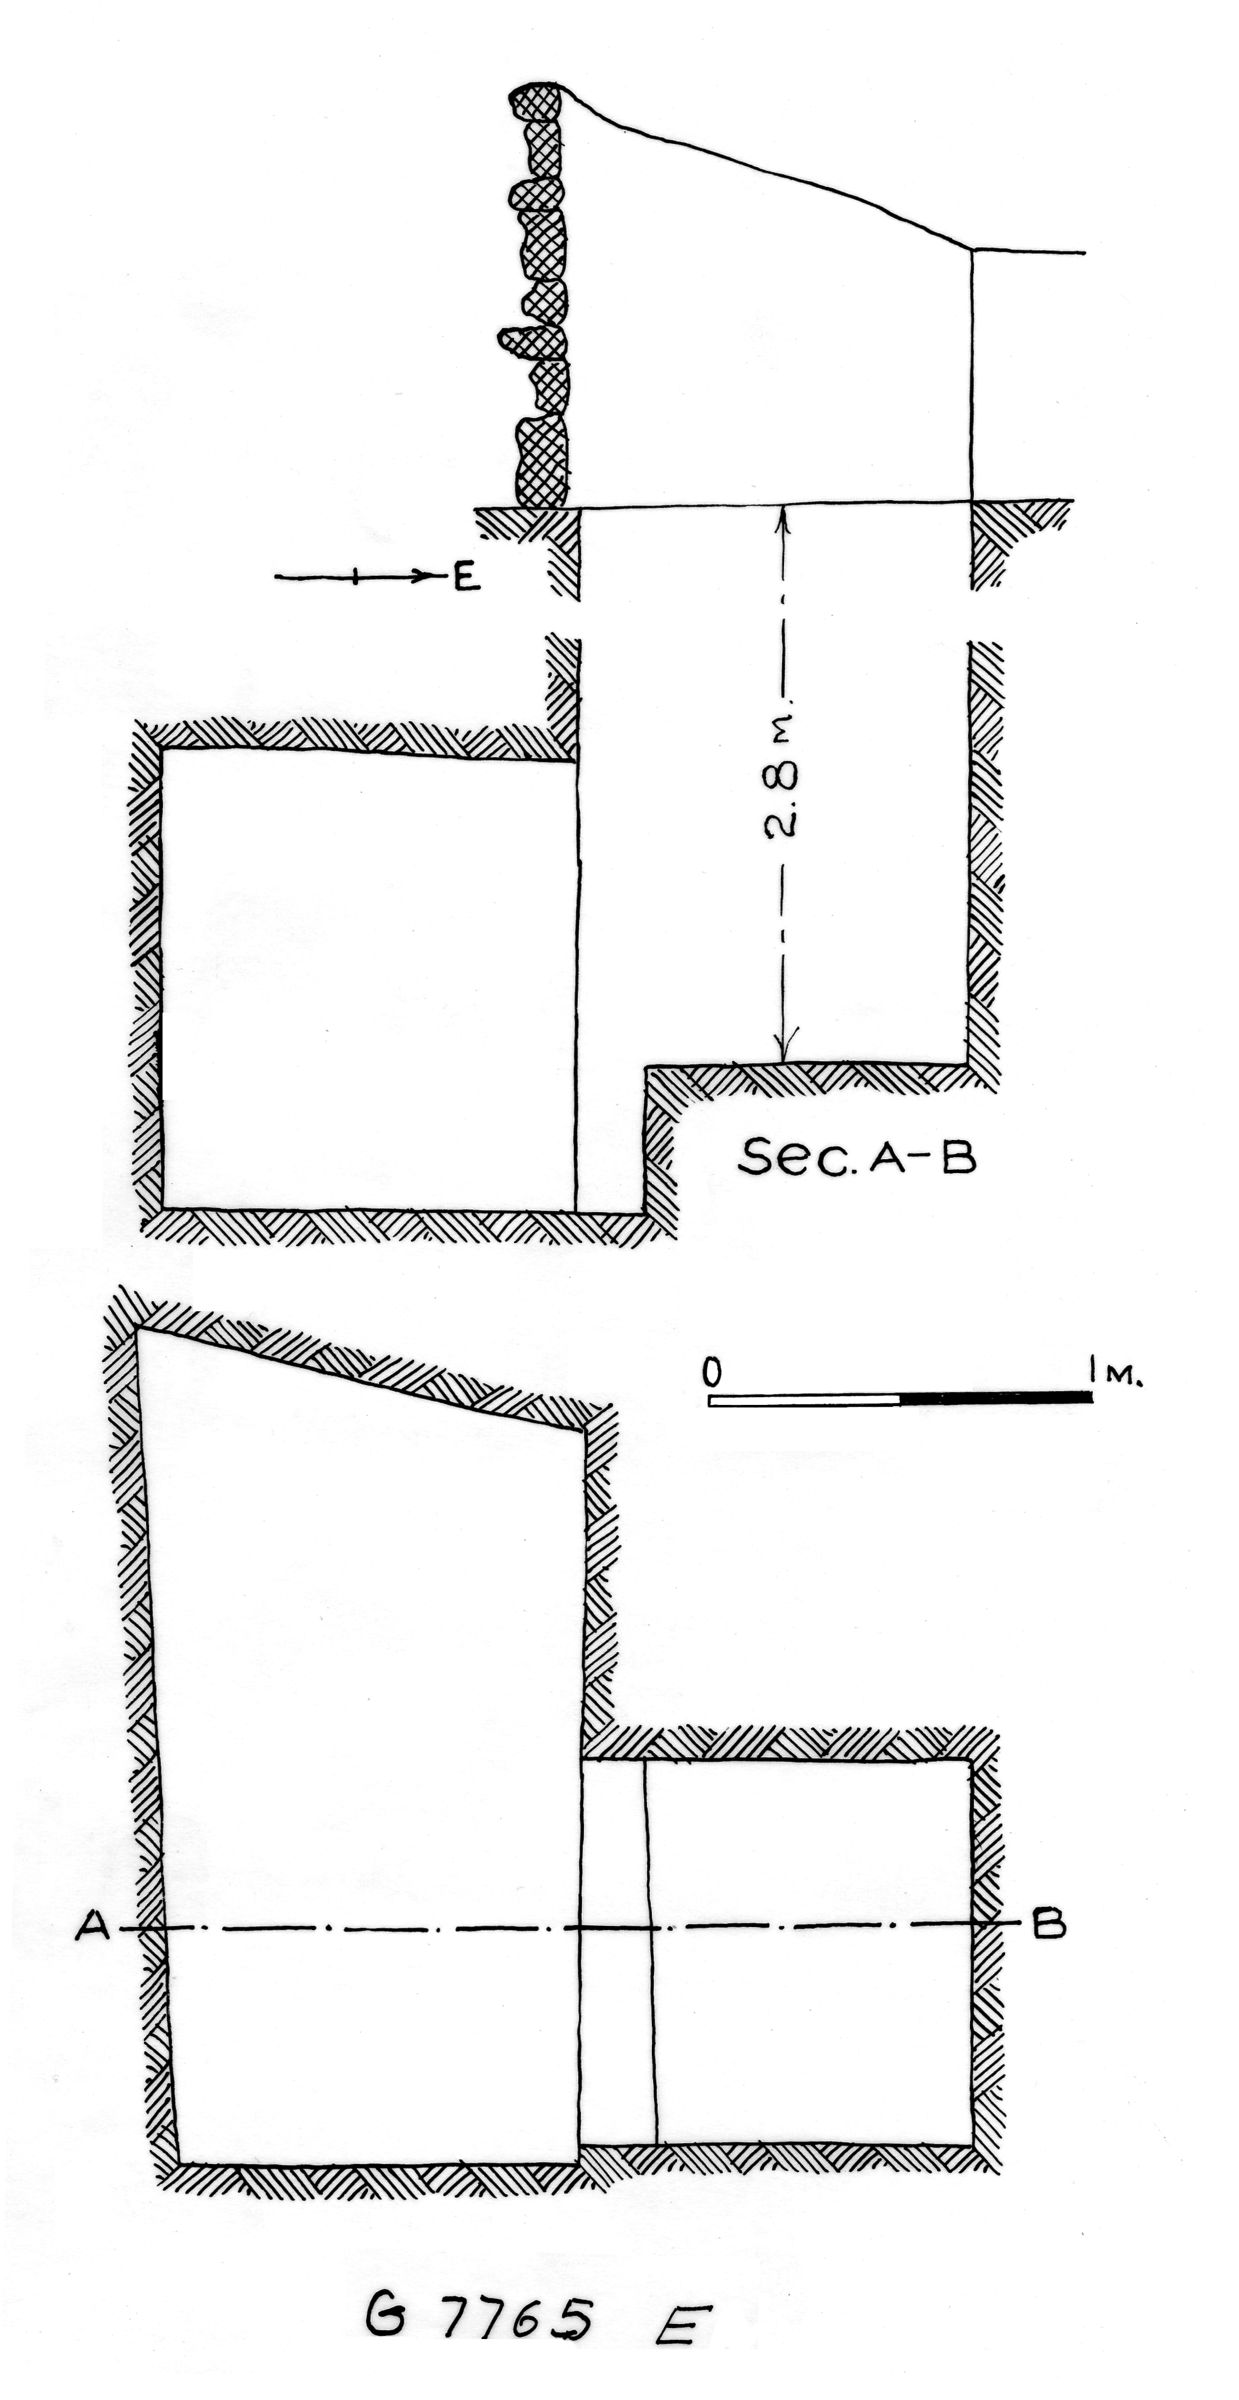 Maps and plans: G 7765, Shaft E